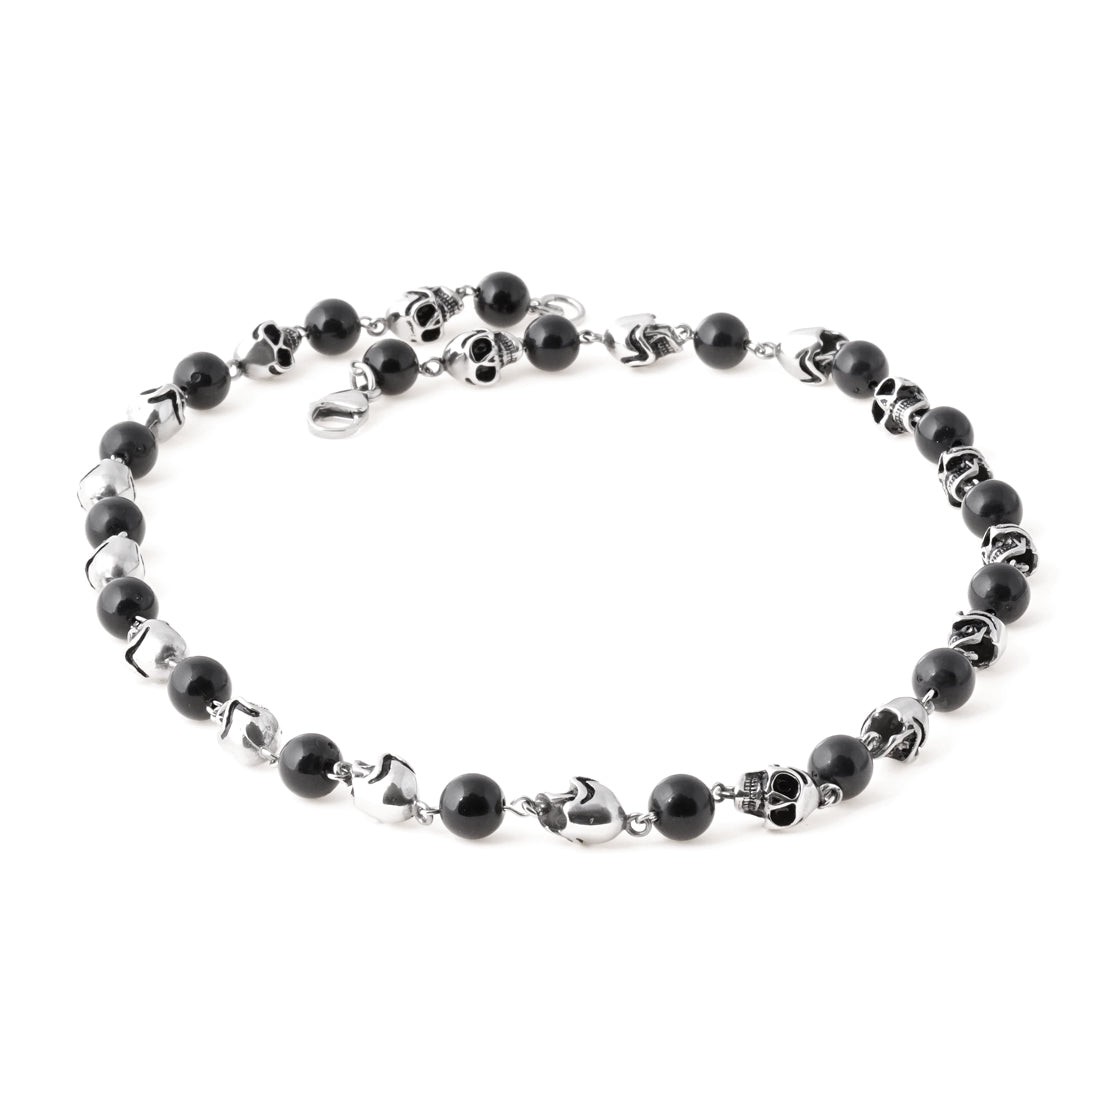 BLACK Steel Skull Onyx Bead Necklace - URBANCREWS